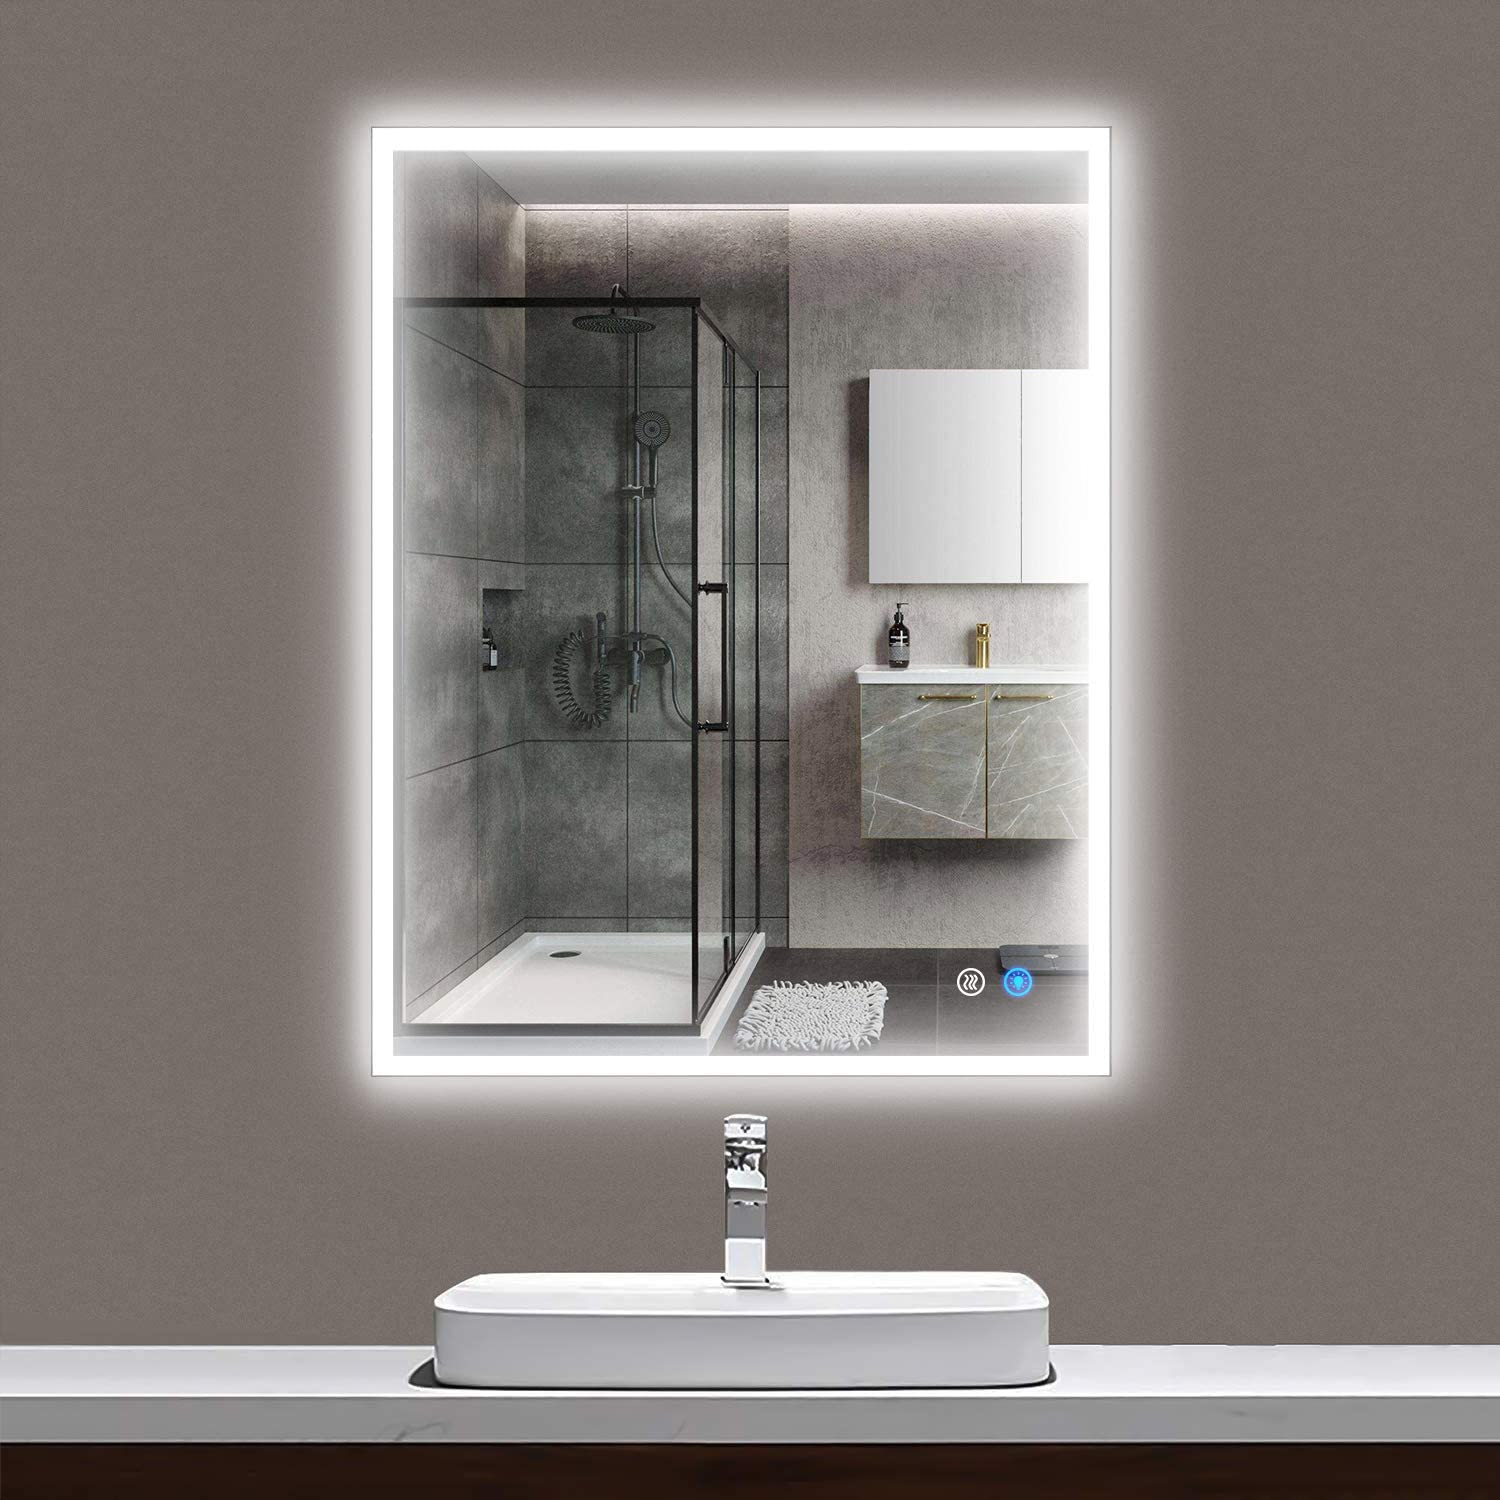 Amazon Com Maistech Bathroom Mirror With Led Lights Large Wall Led Vanity Mirror Lighted Bathroom Mirror Anti Fog Dimmable Frameless Makeup Mirrors 32 X 24 Home Kitchen